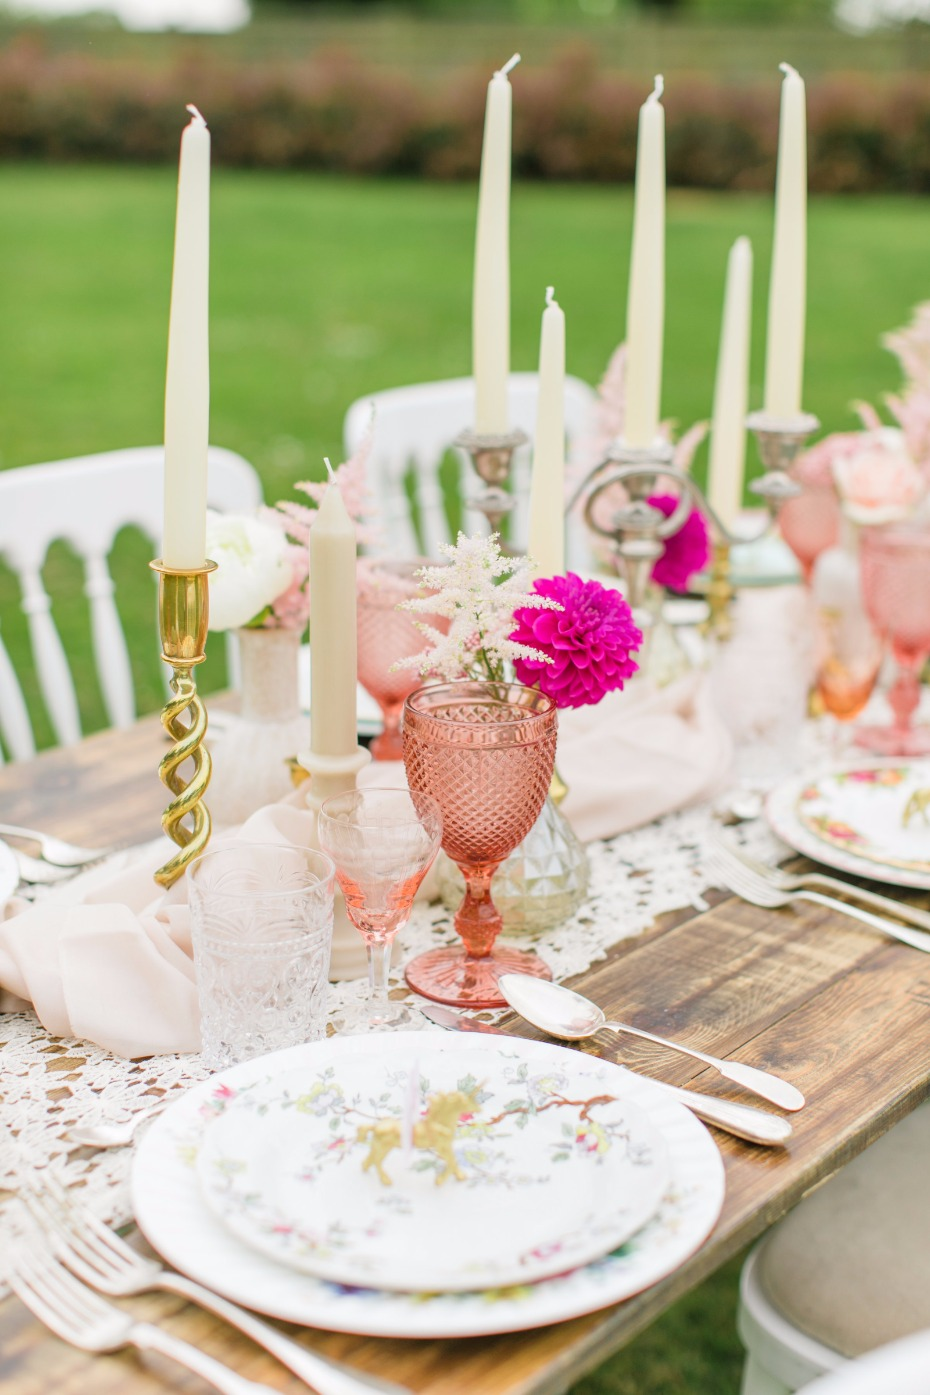 Natural table with pink and gold details